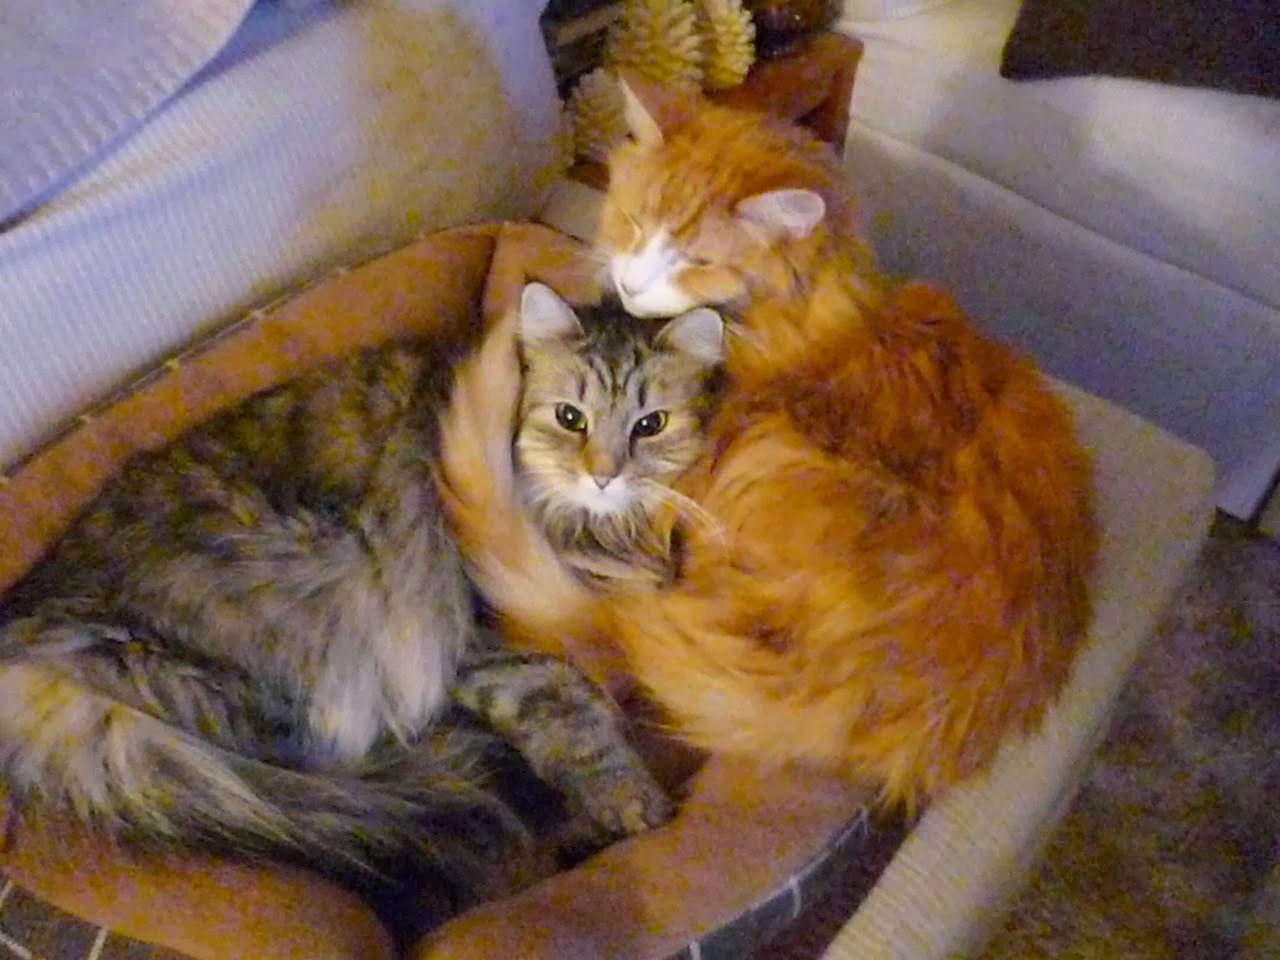 Funny cats - part 93 (40 pics + 10 gifs), two fluffy cats cuddling